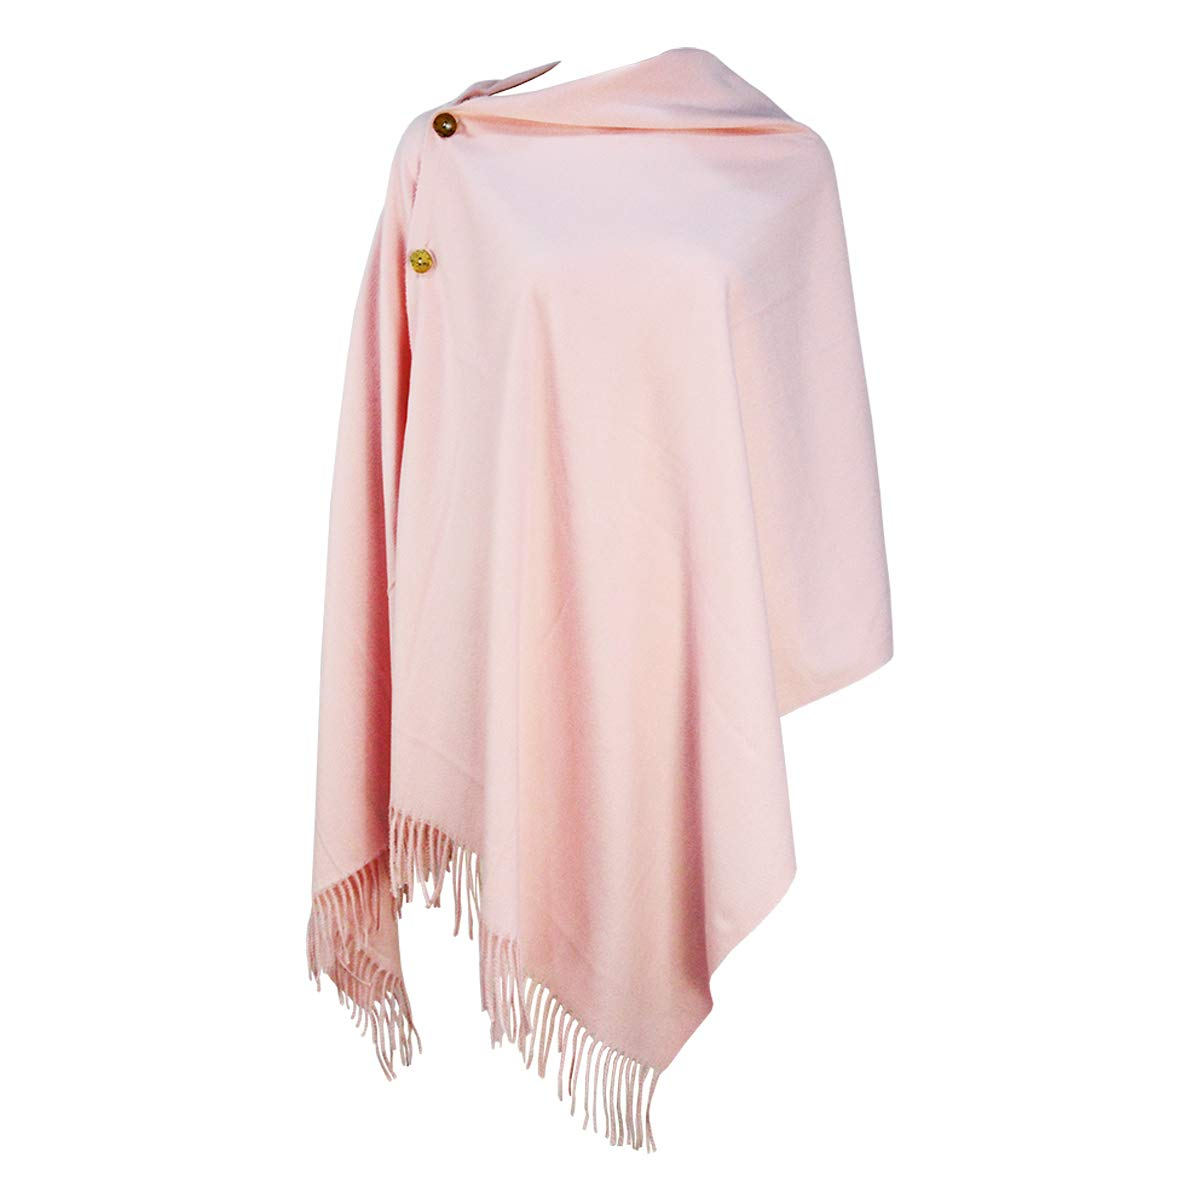 Homelex Winter Solid Color Warm Wool Scarf Blanket Button Shawl For Women's (Pink)